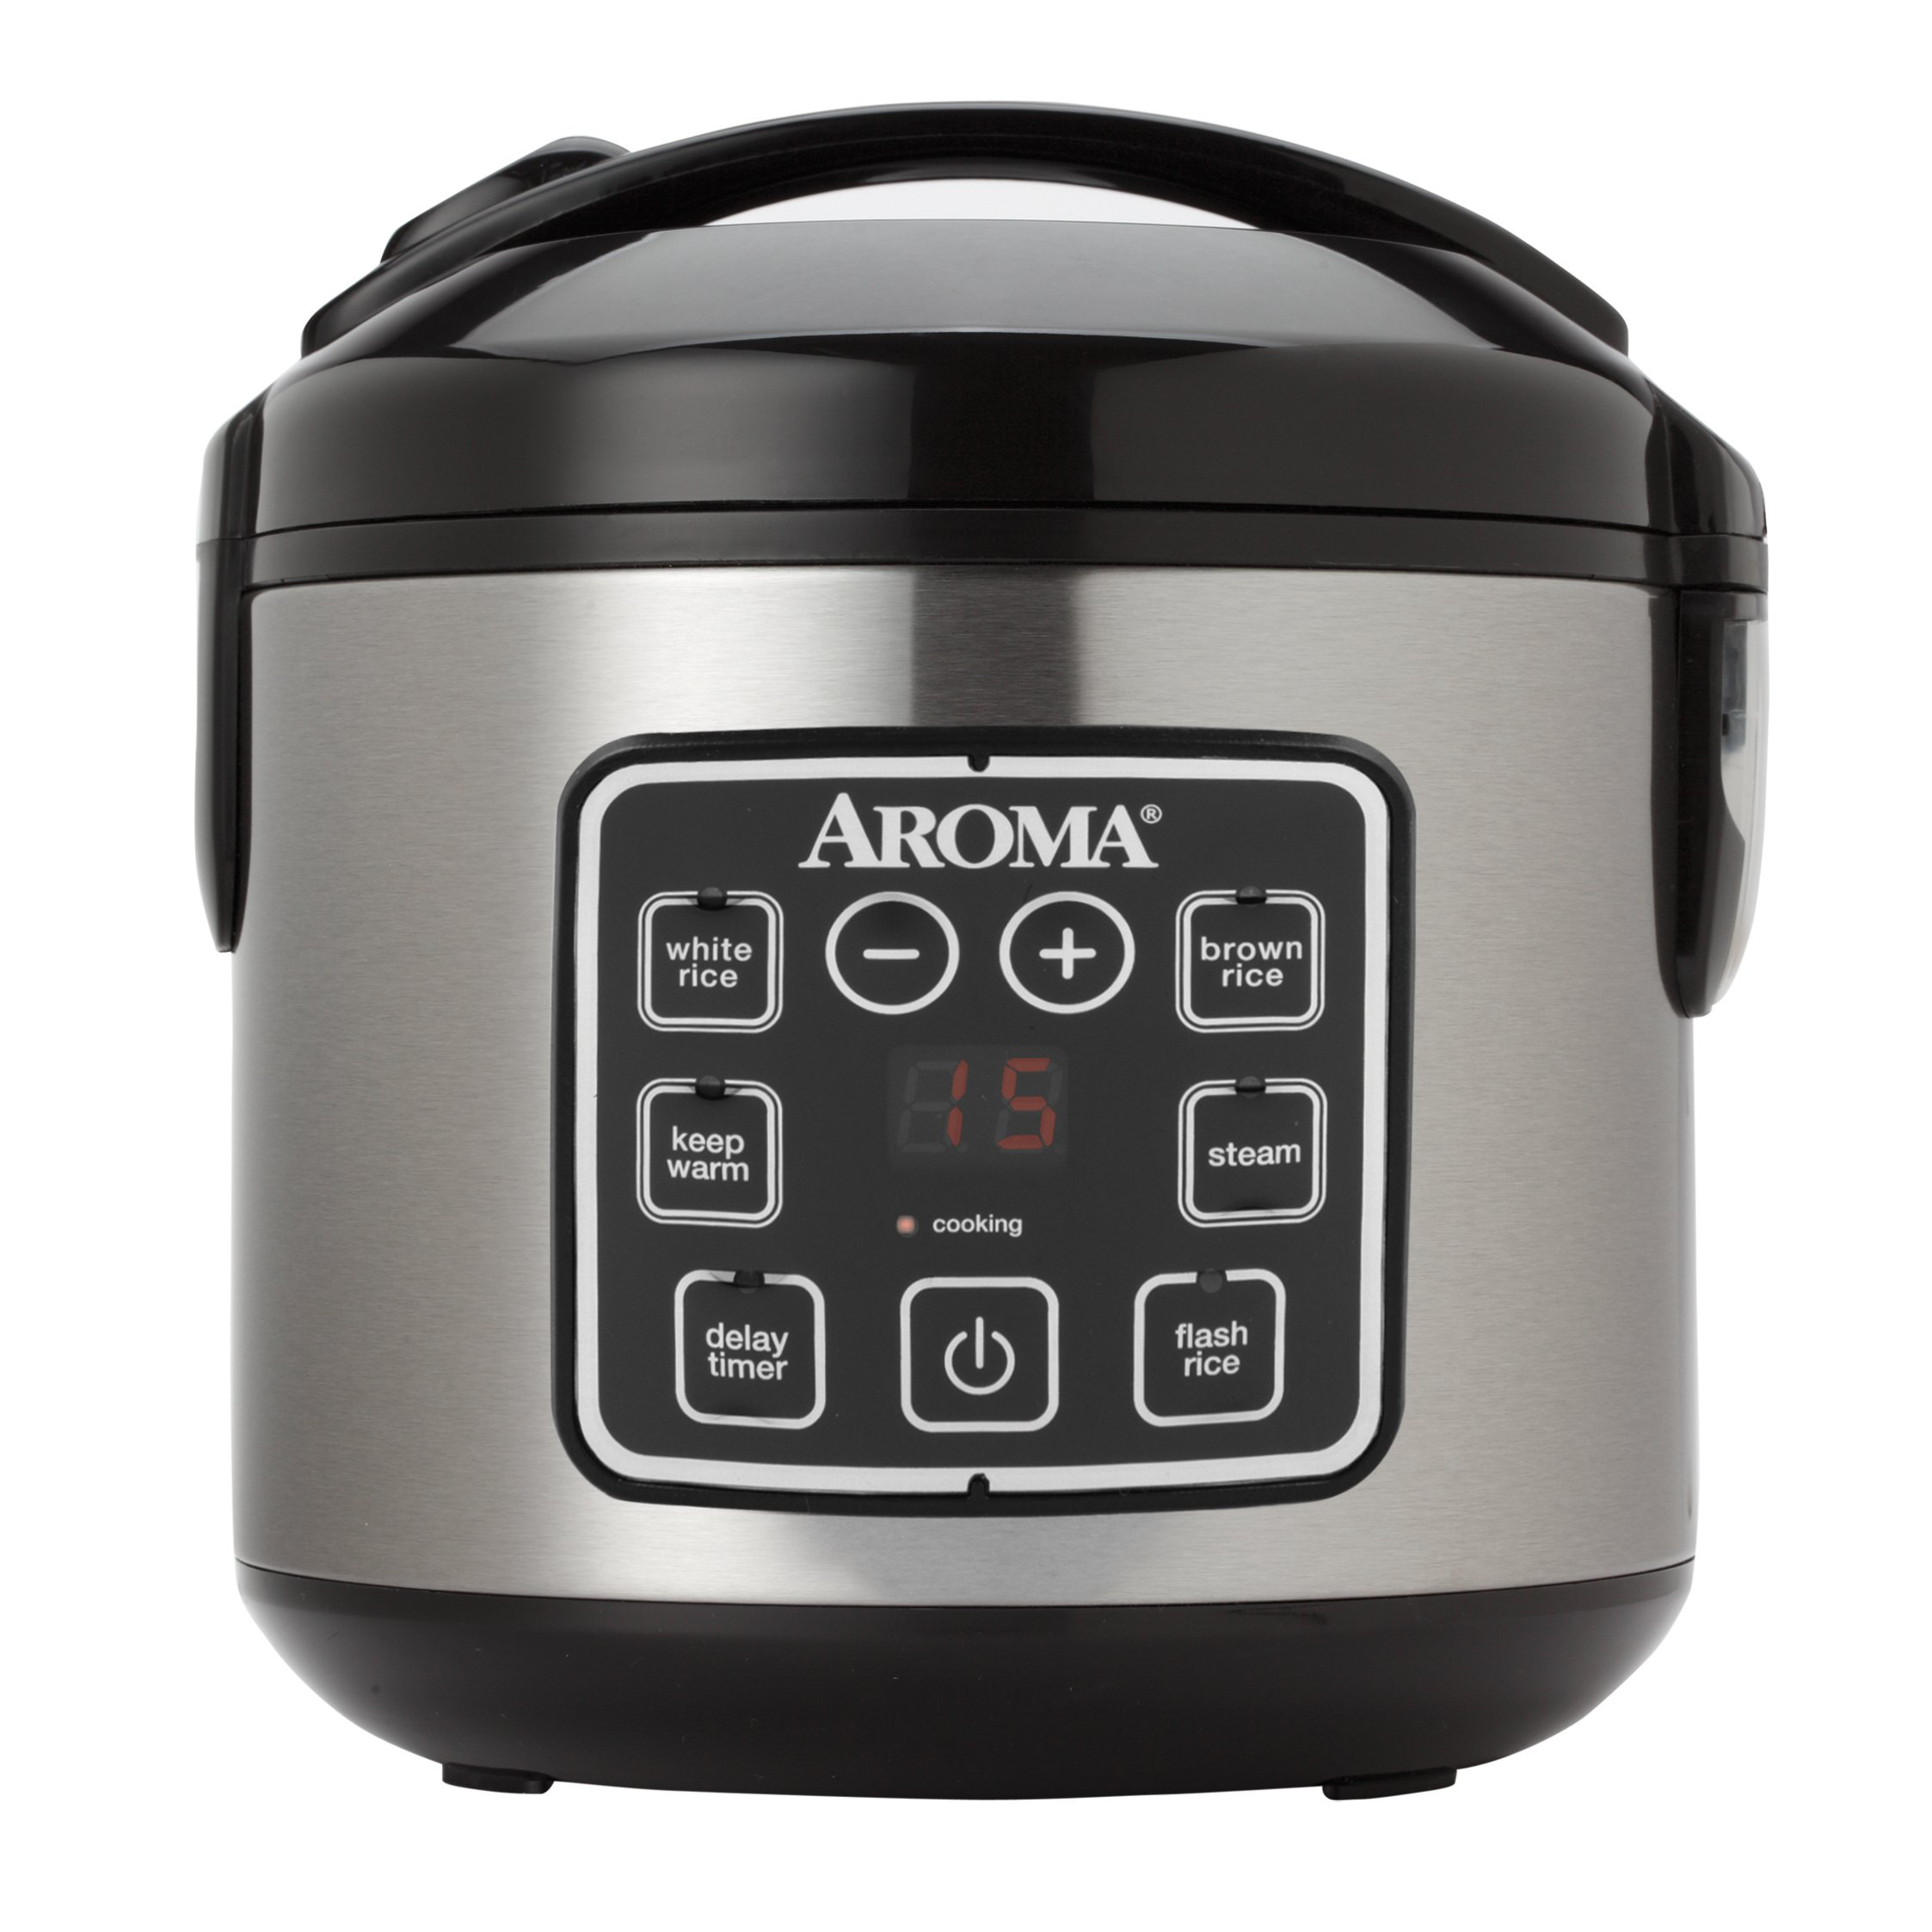 Aroma Housewares ARC-914SBD 2-8-Cups (Cooked) Digital Cool-Touch Rice Grain Cooker and Food Steamer, Stainless, 8 Cup, Silver by Aroma Housewares